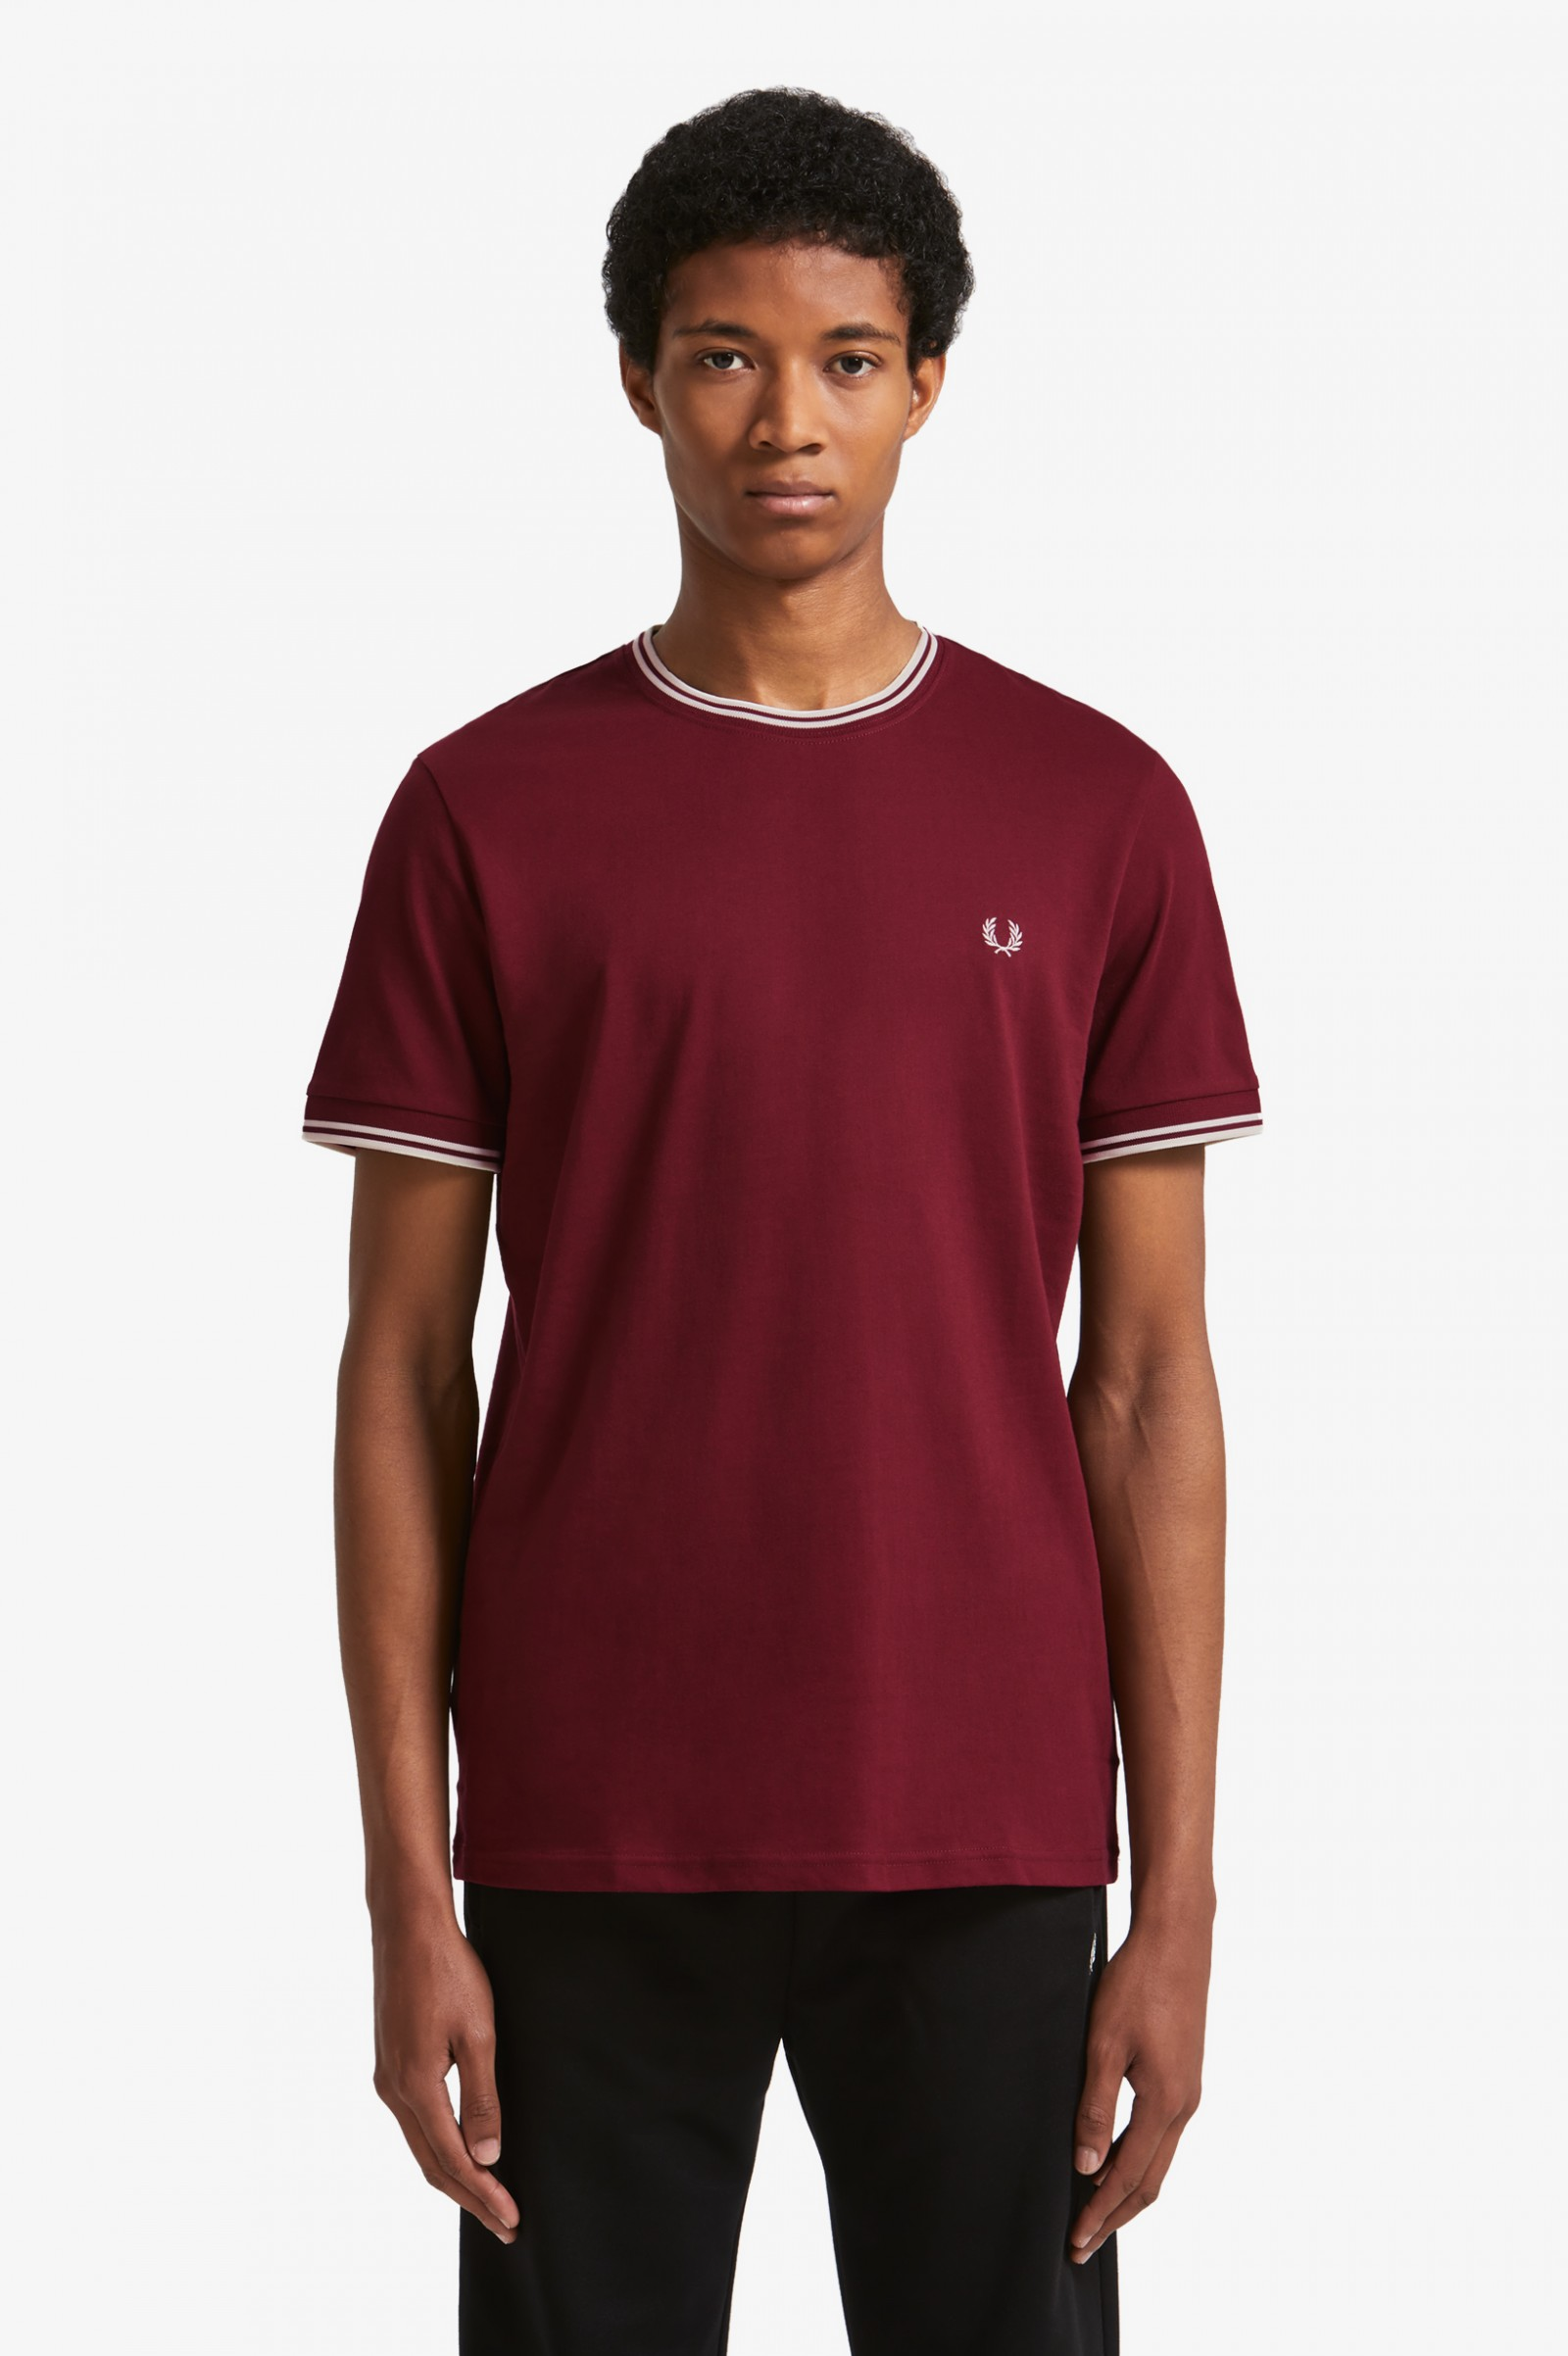 3ecb47189 Twin Tipped T-Shirt - Aubergine | Men's T-Shirts | Fred Perry US